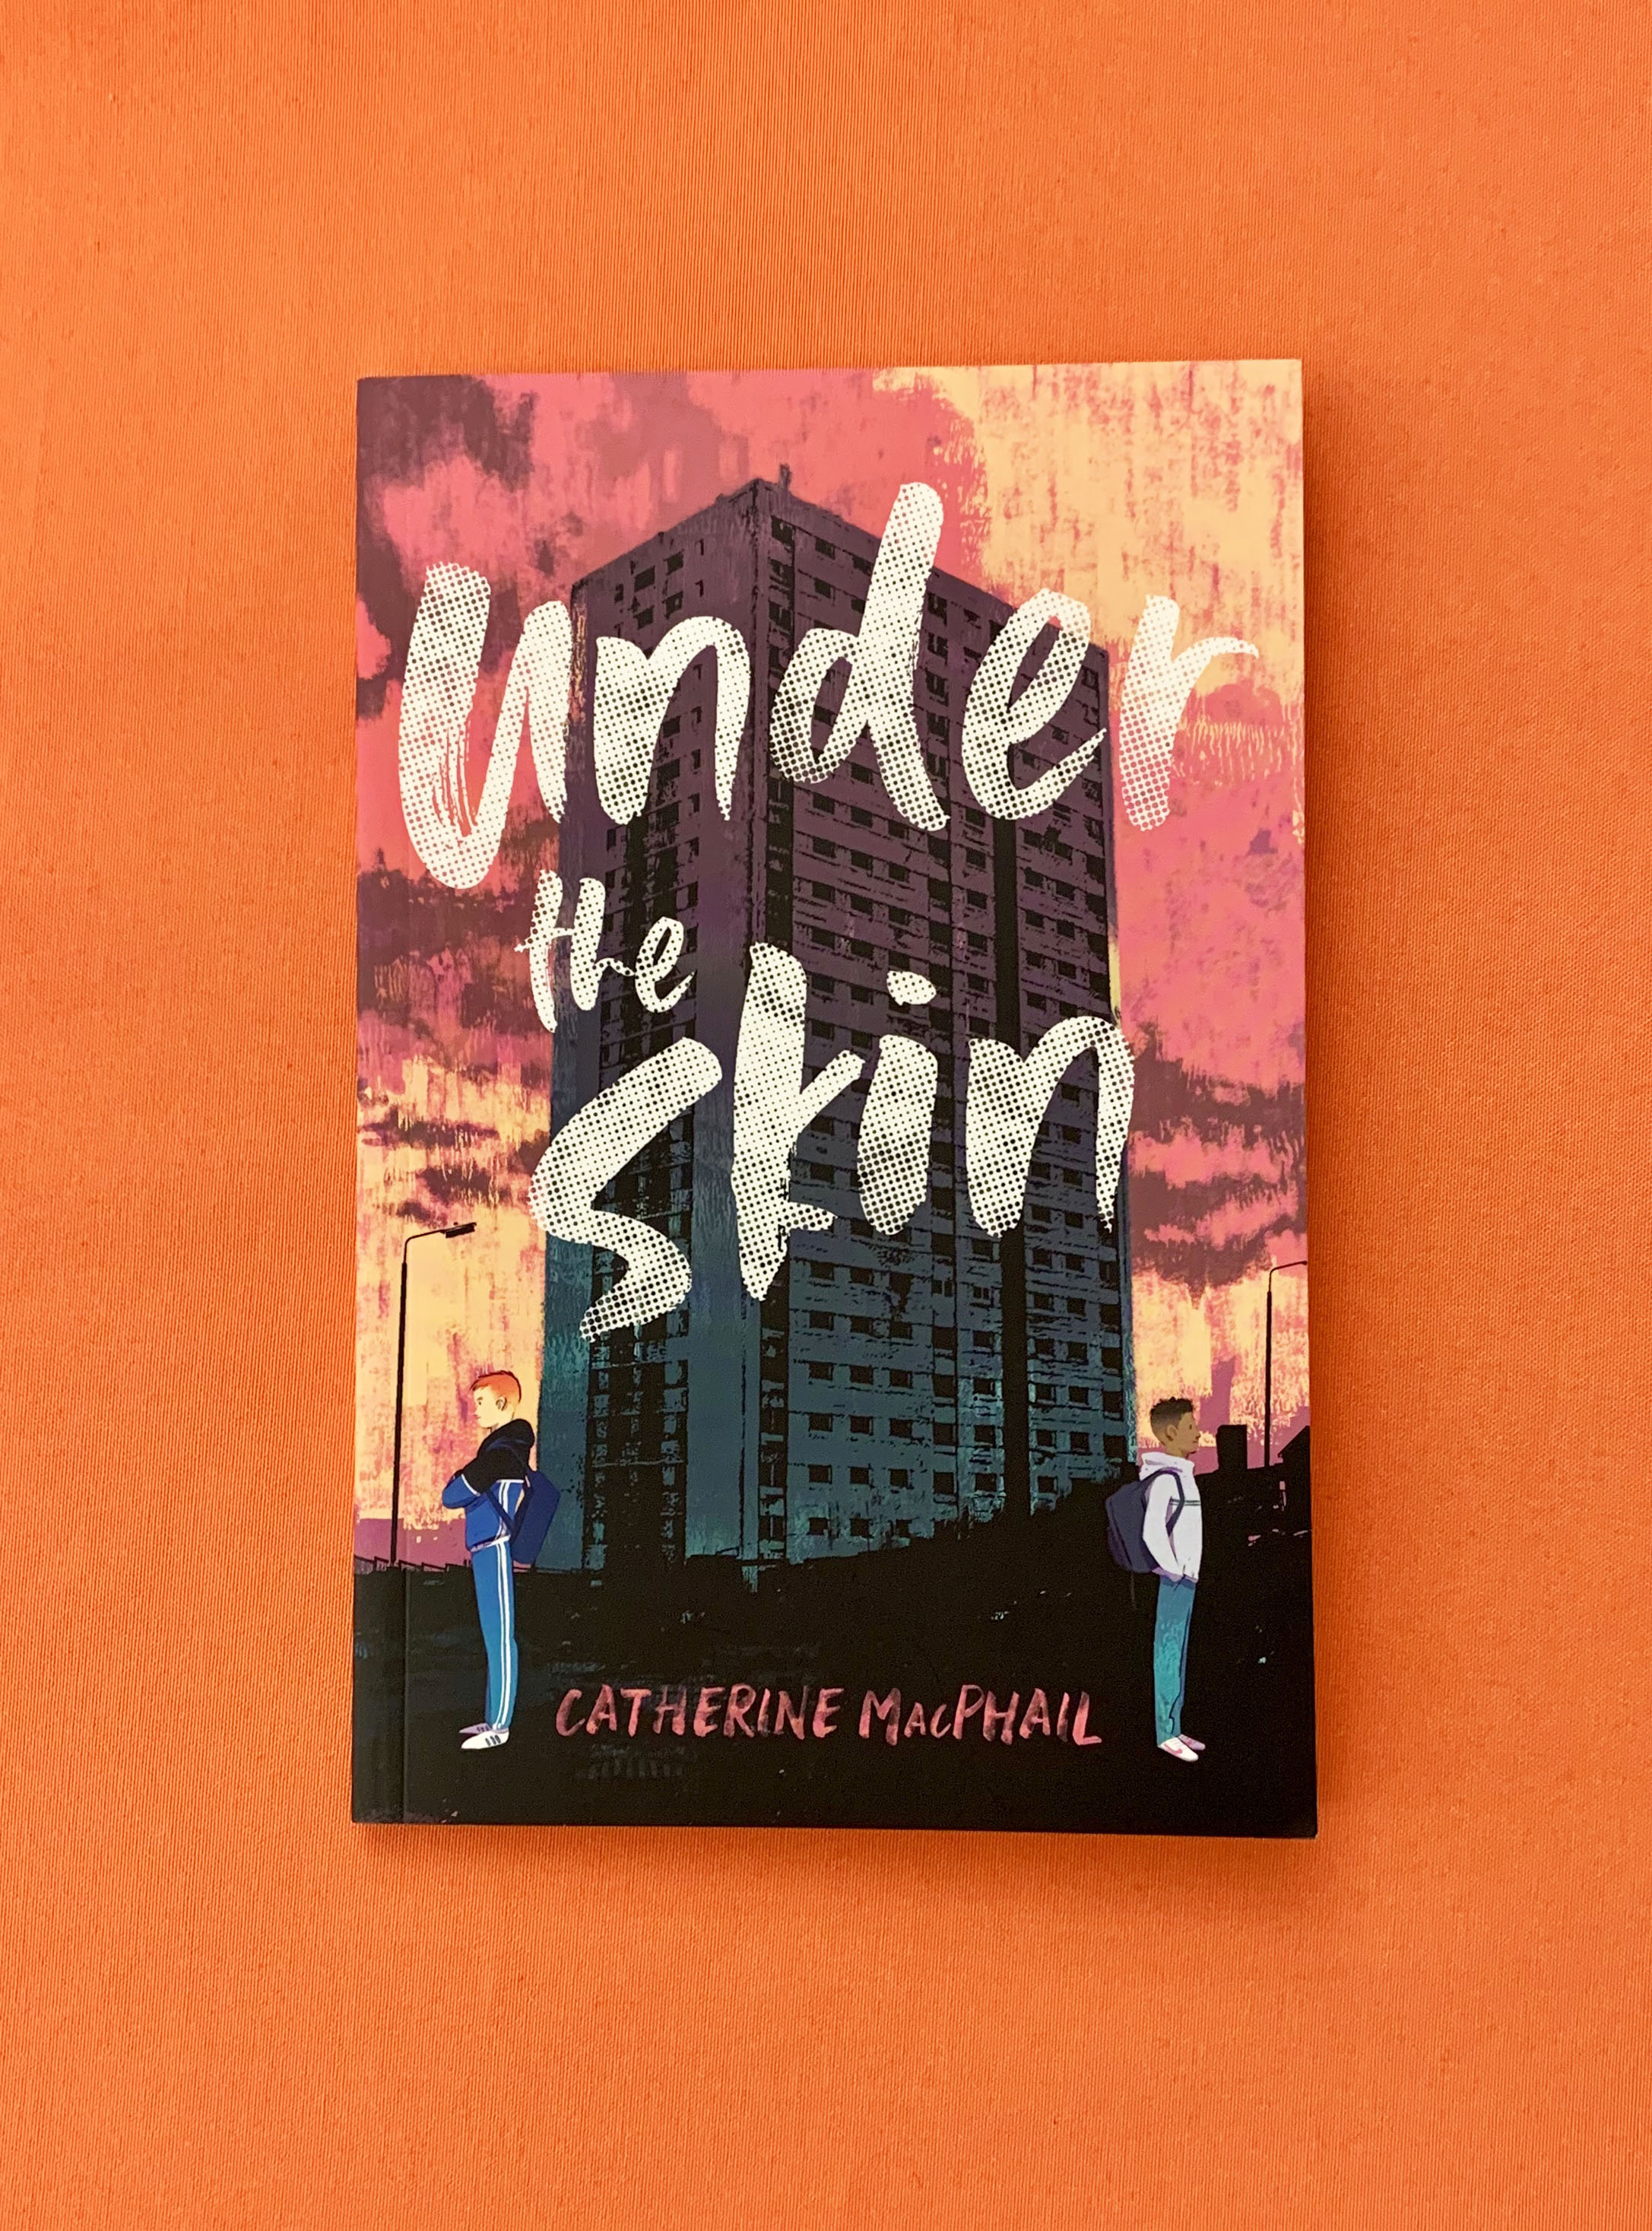 Image of the book Under the Skin lying on an orange table